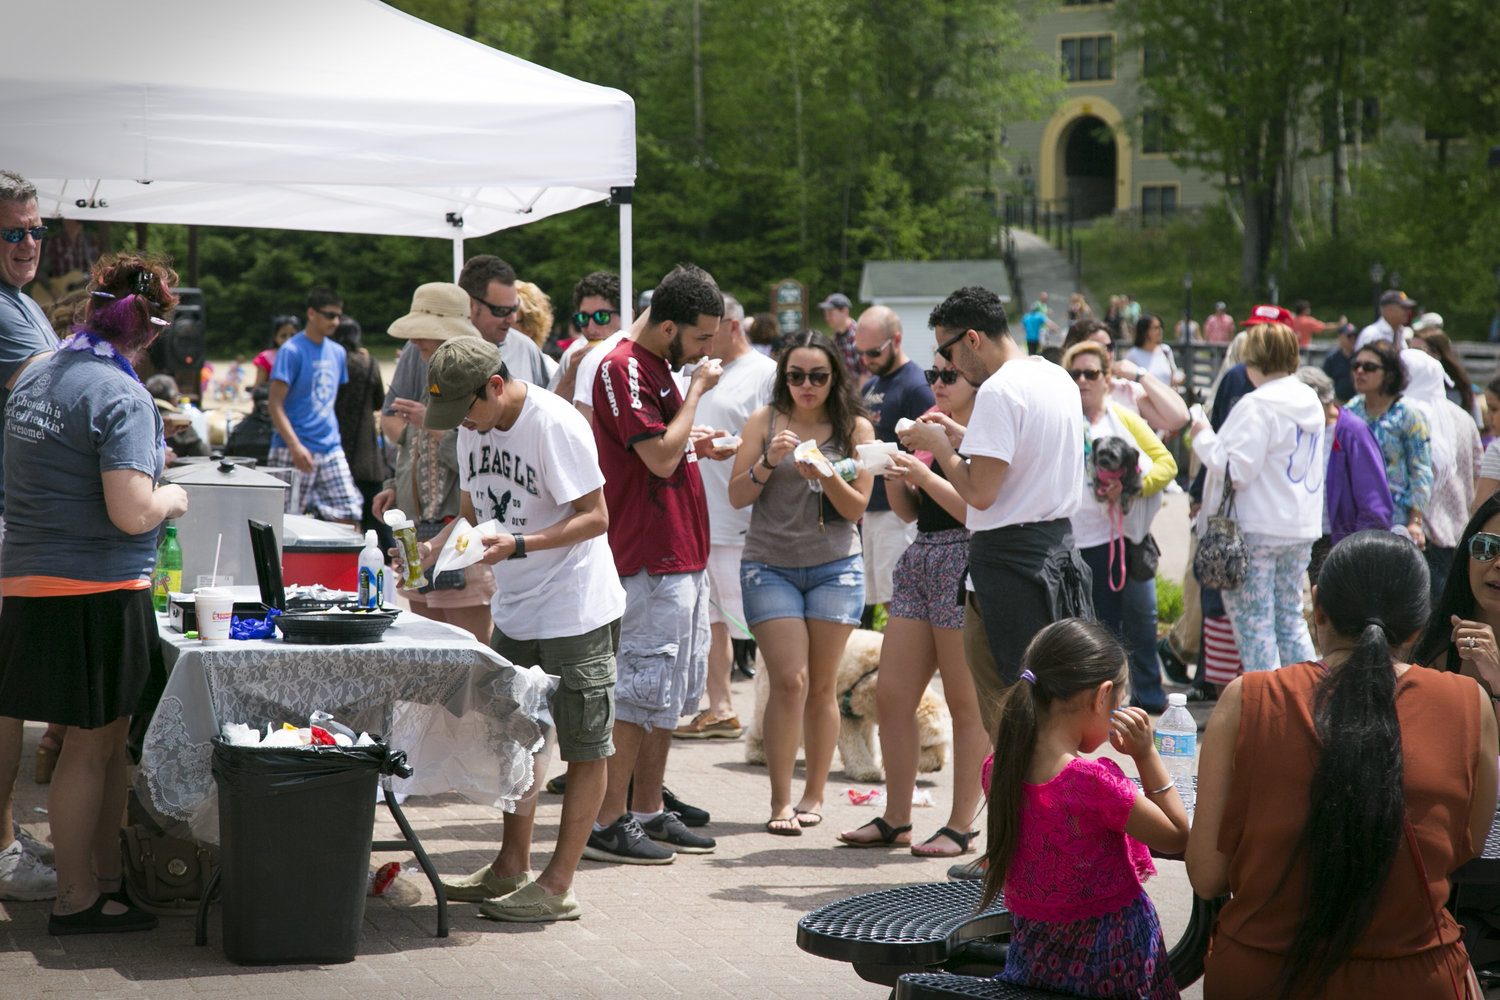 """Marking the 30thyear of chowder in the valley, Waterville Valley will host its annual Chowderfest & Brews on Sunday of Memorial Day weekend, May 26, from 12 to 2 p.m. in the Town Square.Family-friendly, fun and delicious, come sample a variety of chowders from local restaurants.Vote for your favorite and the winning chowder chef will receive the coveted """"Golden Clam Award."""""""